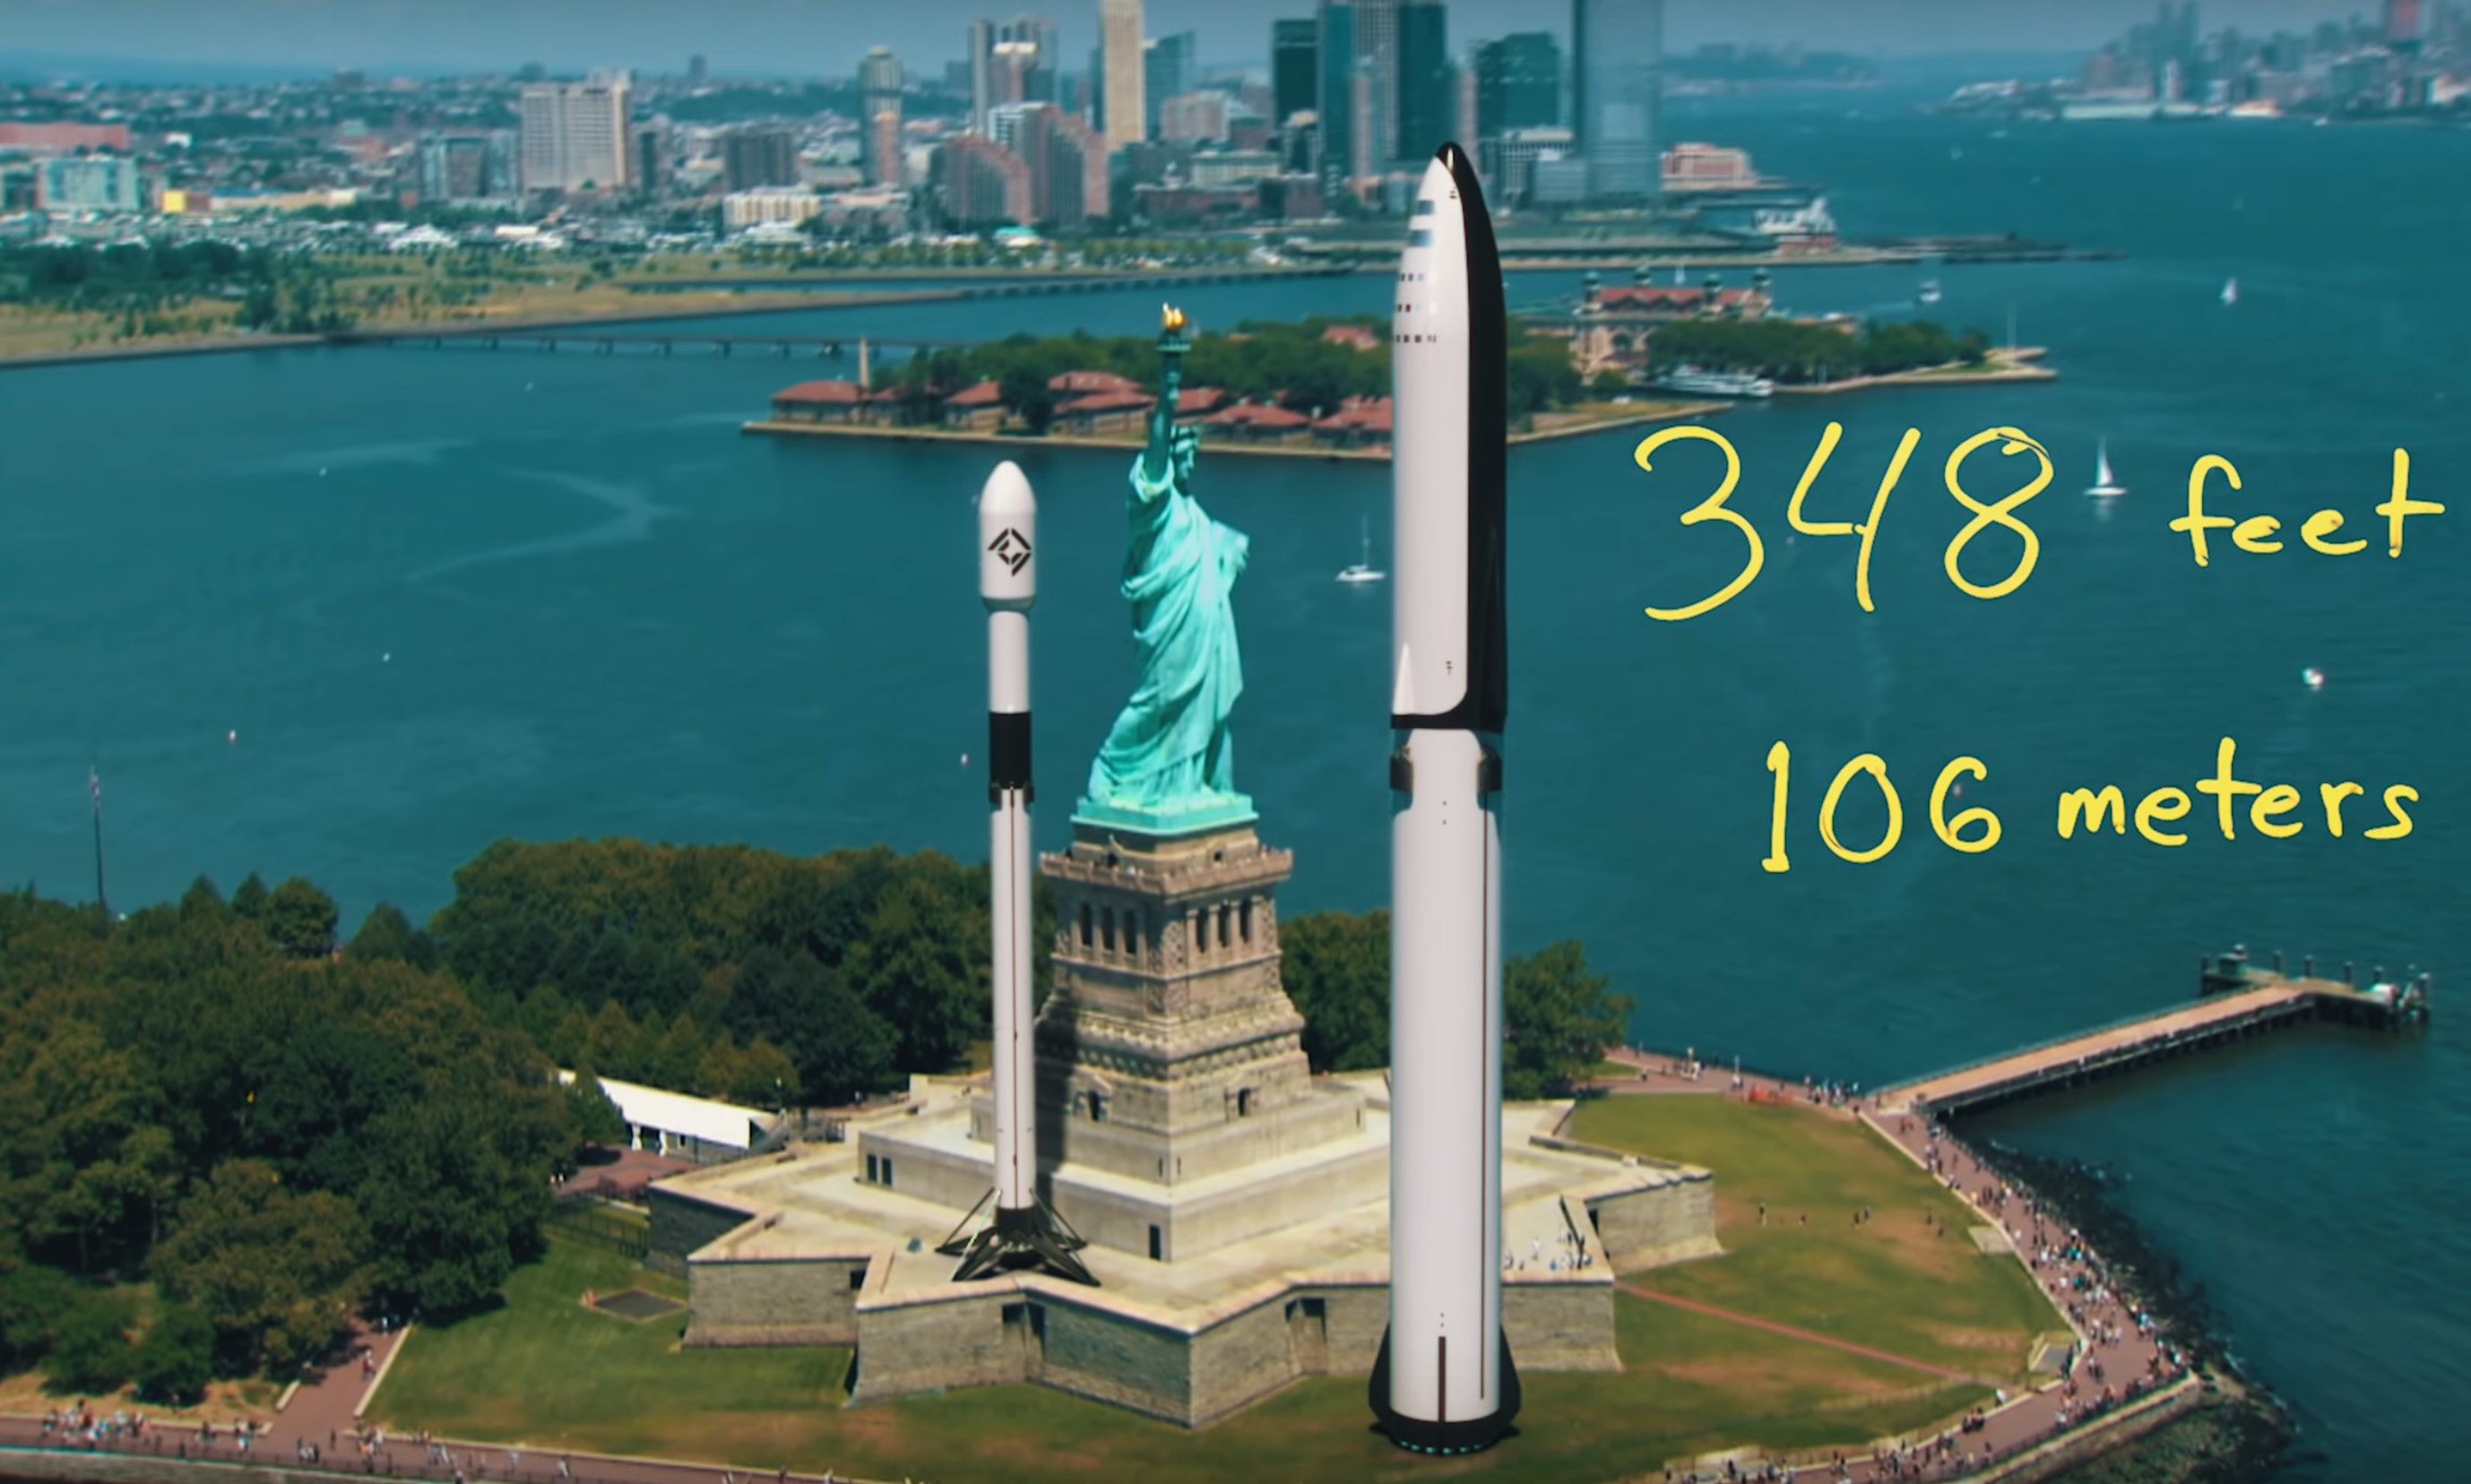 F9 BFR Statue of Liberty to scale (sirwrender)